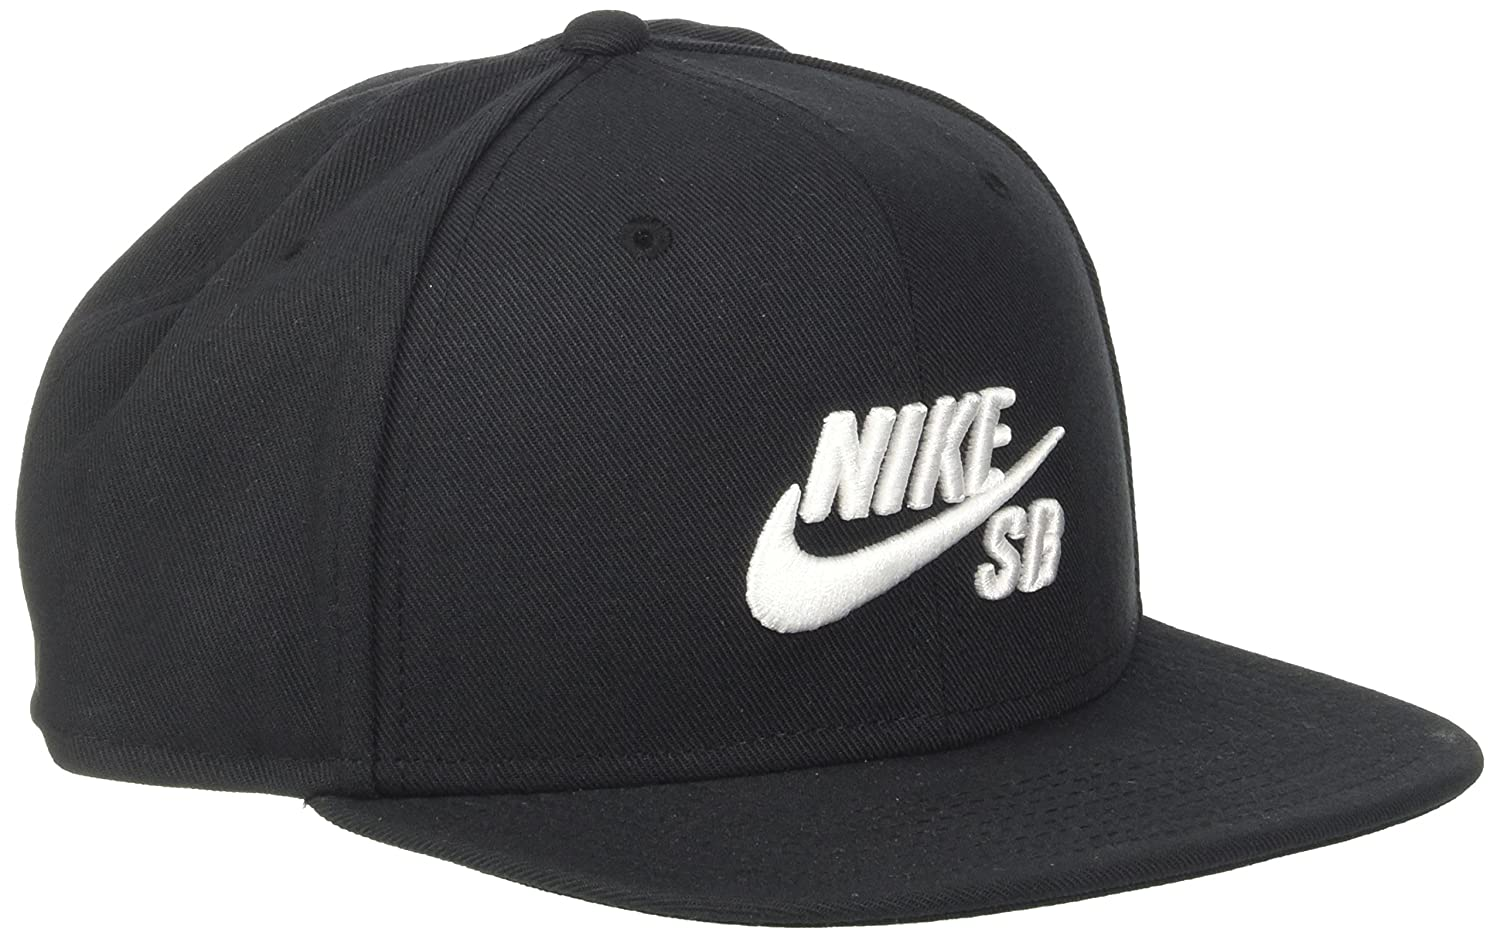 70d73342411 Amazon.com  Nike Mens SB Icon Pro Snapback Hat Black White  Sports ...